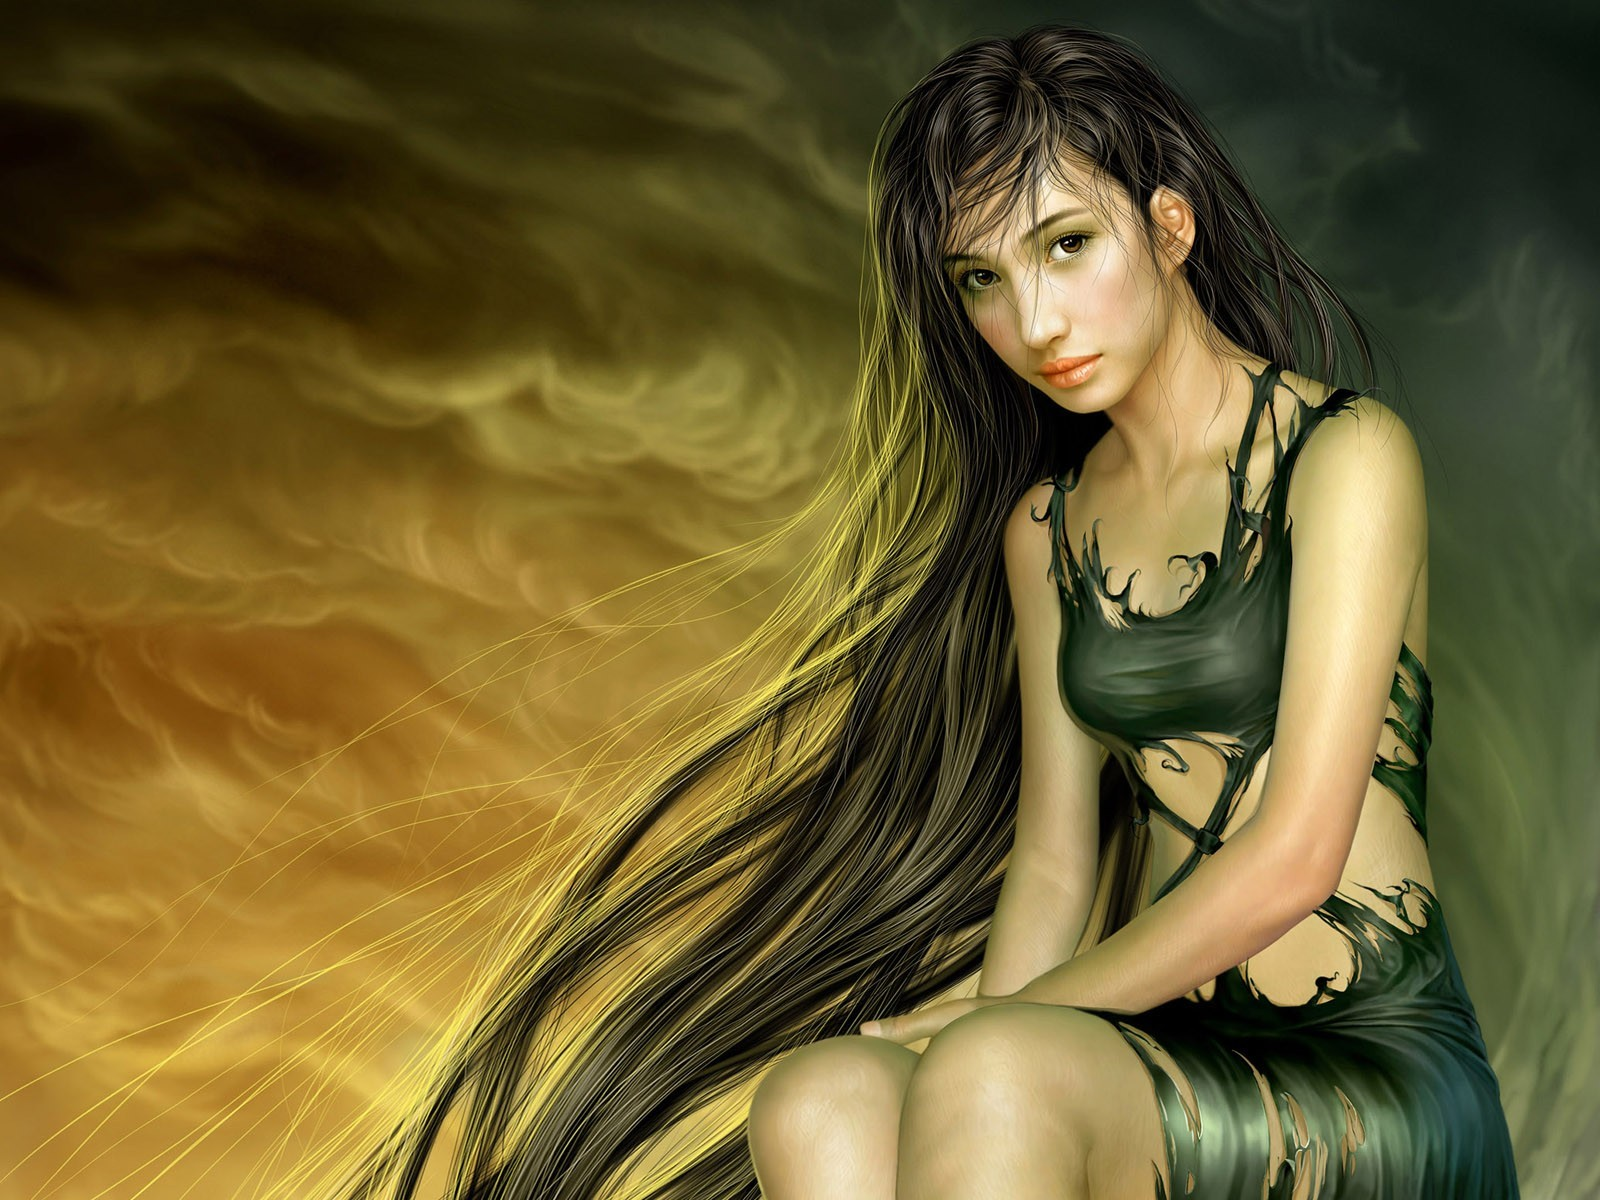 woman fantasy artwork Yuehui HD Wallpaper